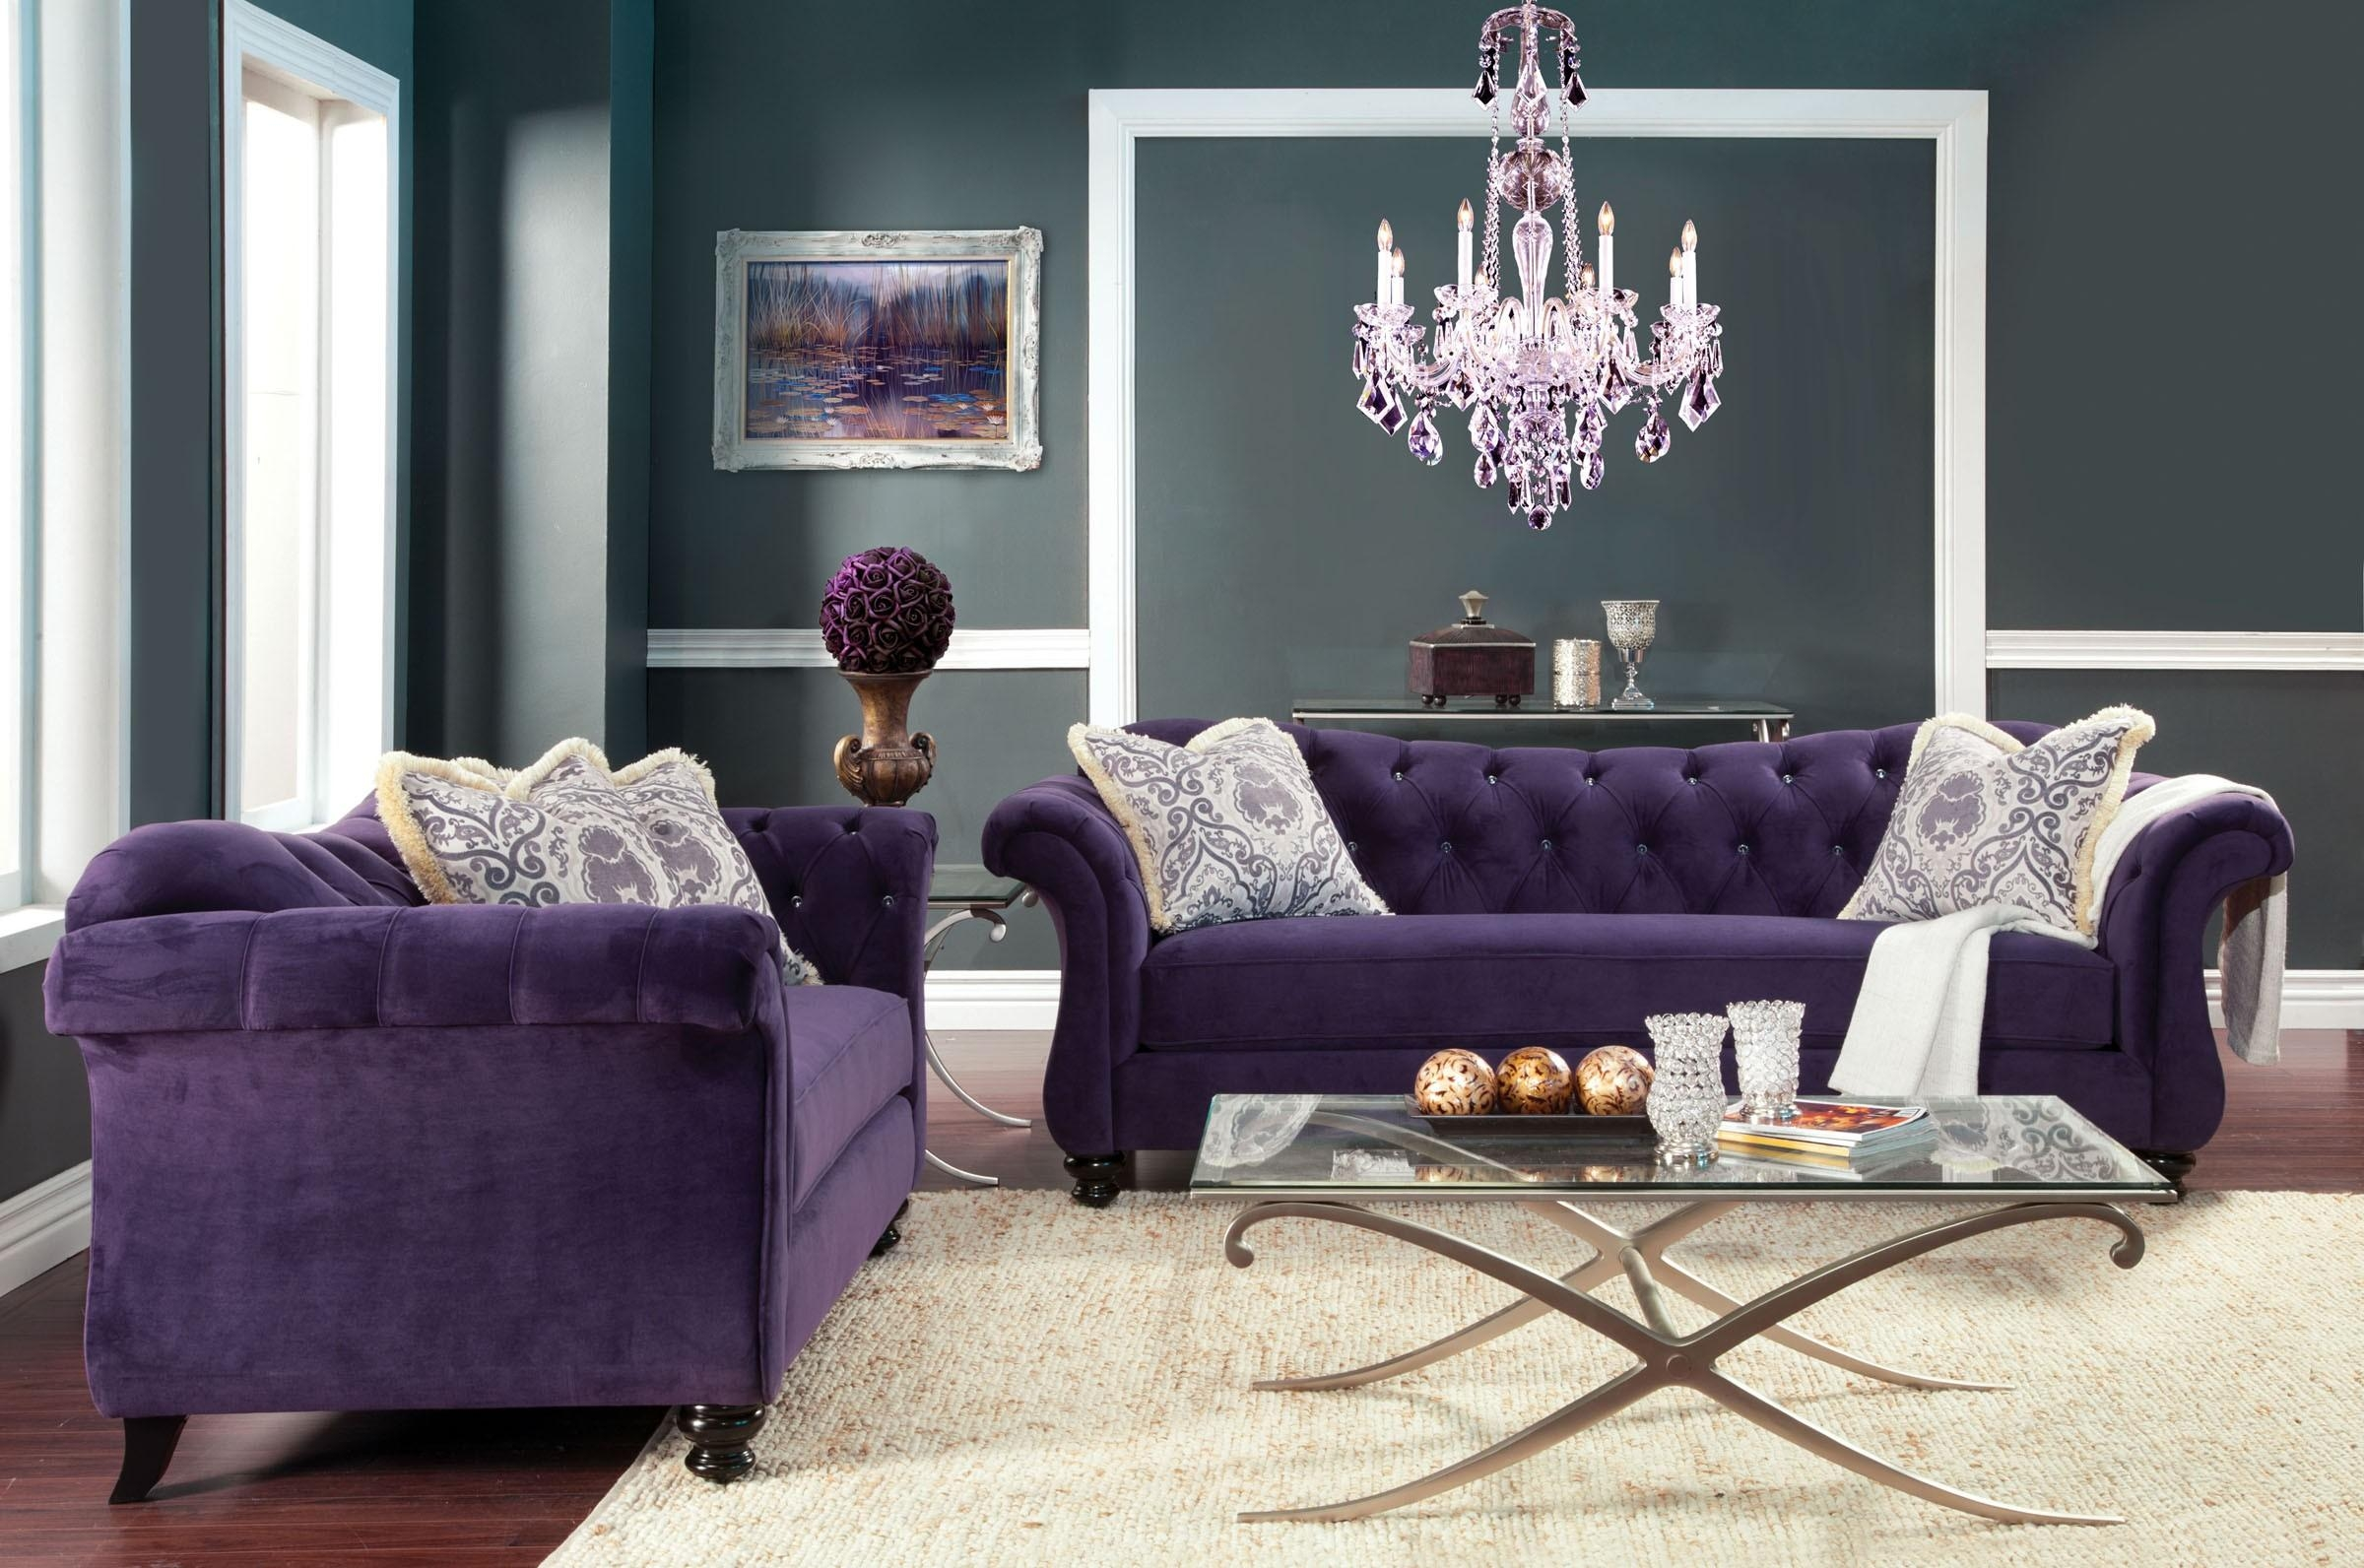 25 Best Chesterfield Sofas To Buy In 2017 throughout Purple Chesterfield Sofas